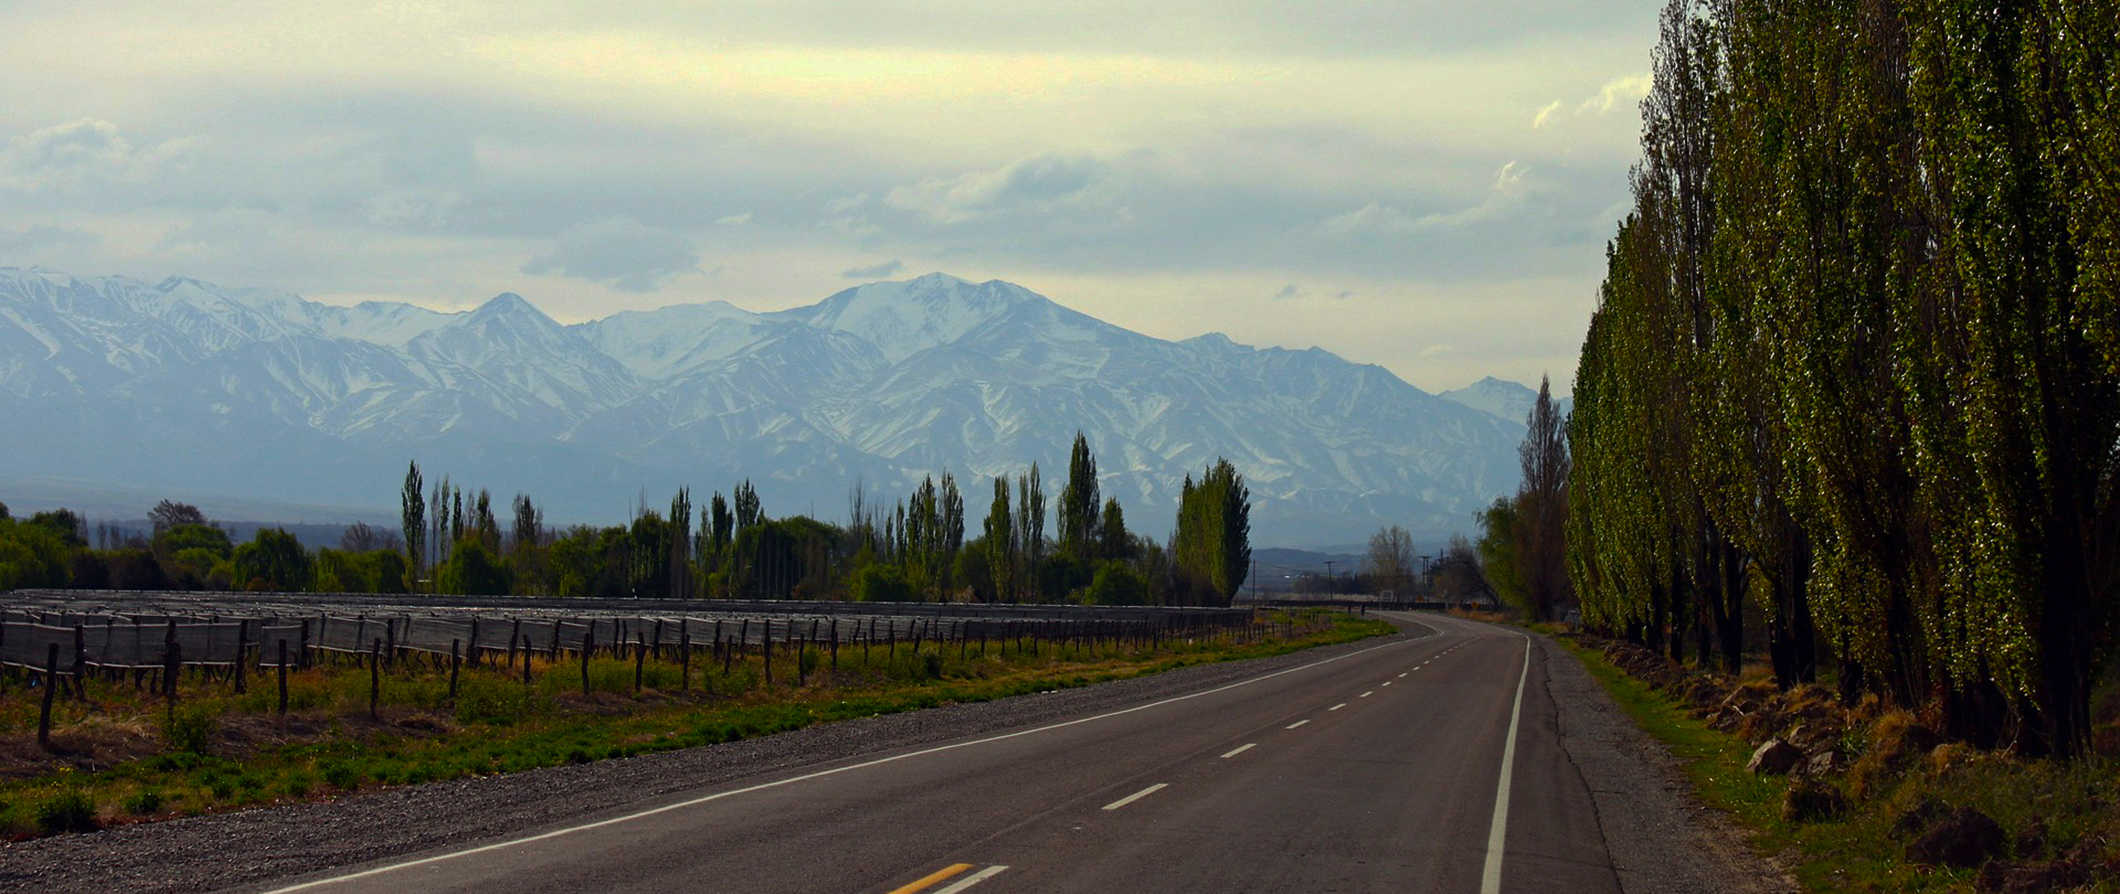 A winding road leading into Mendoza in Argentina